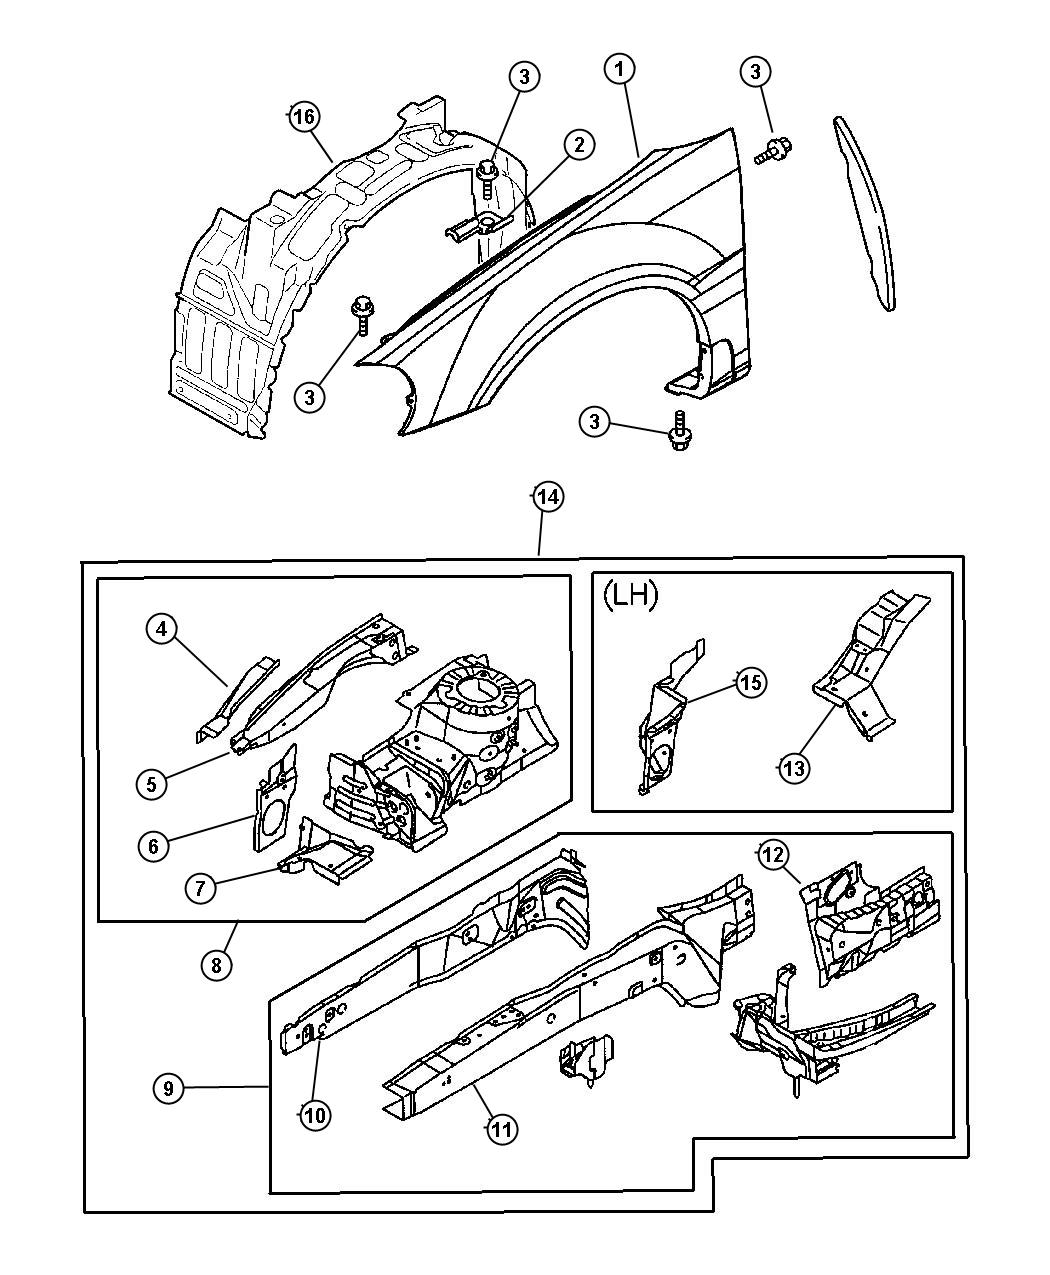 Dodge Neon Rear Strut Diagram, Dodge, Free Engine Image